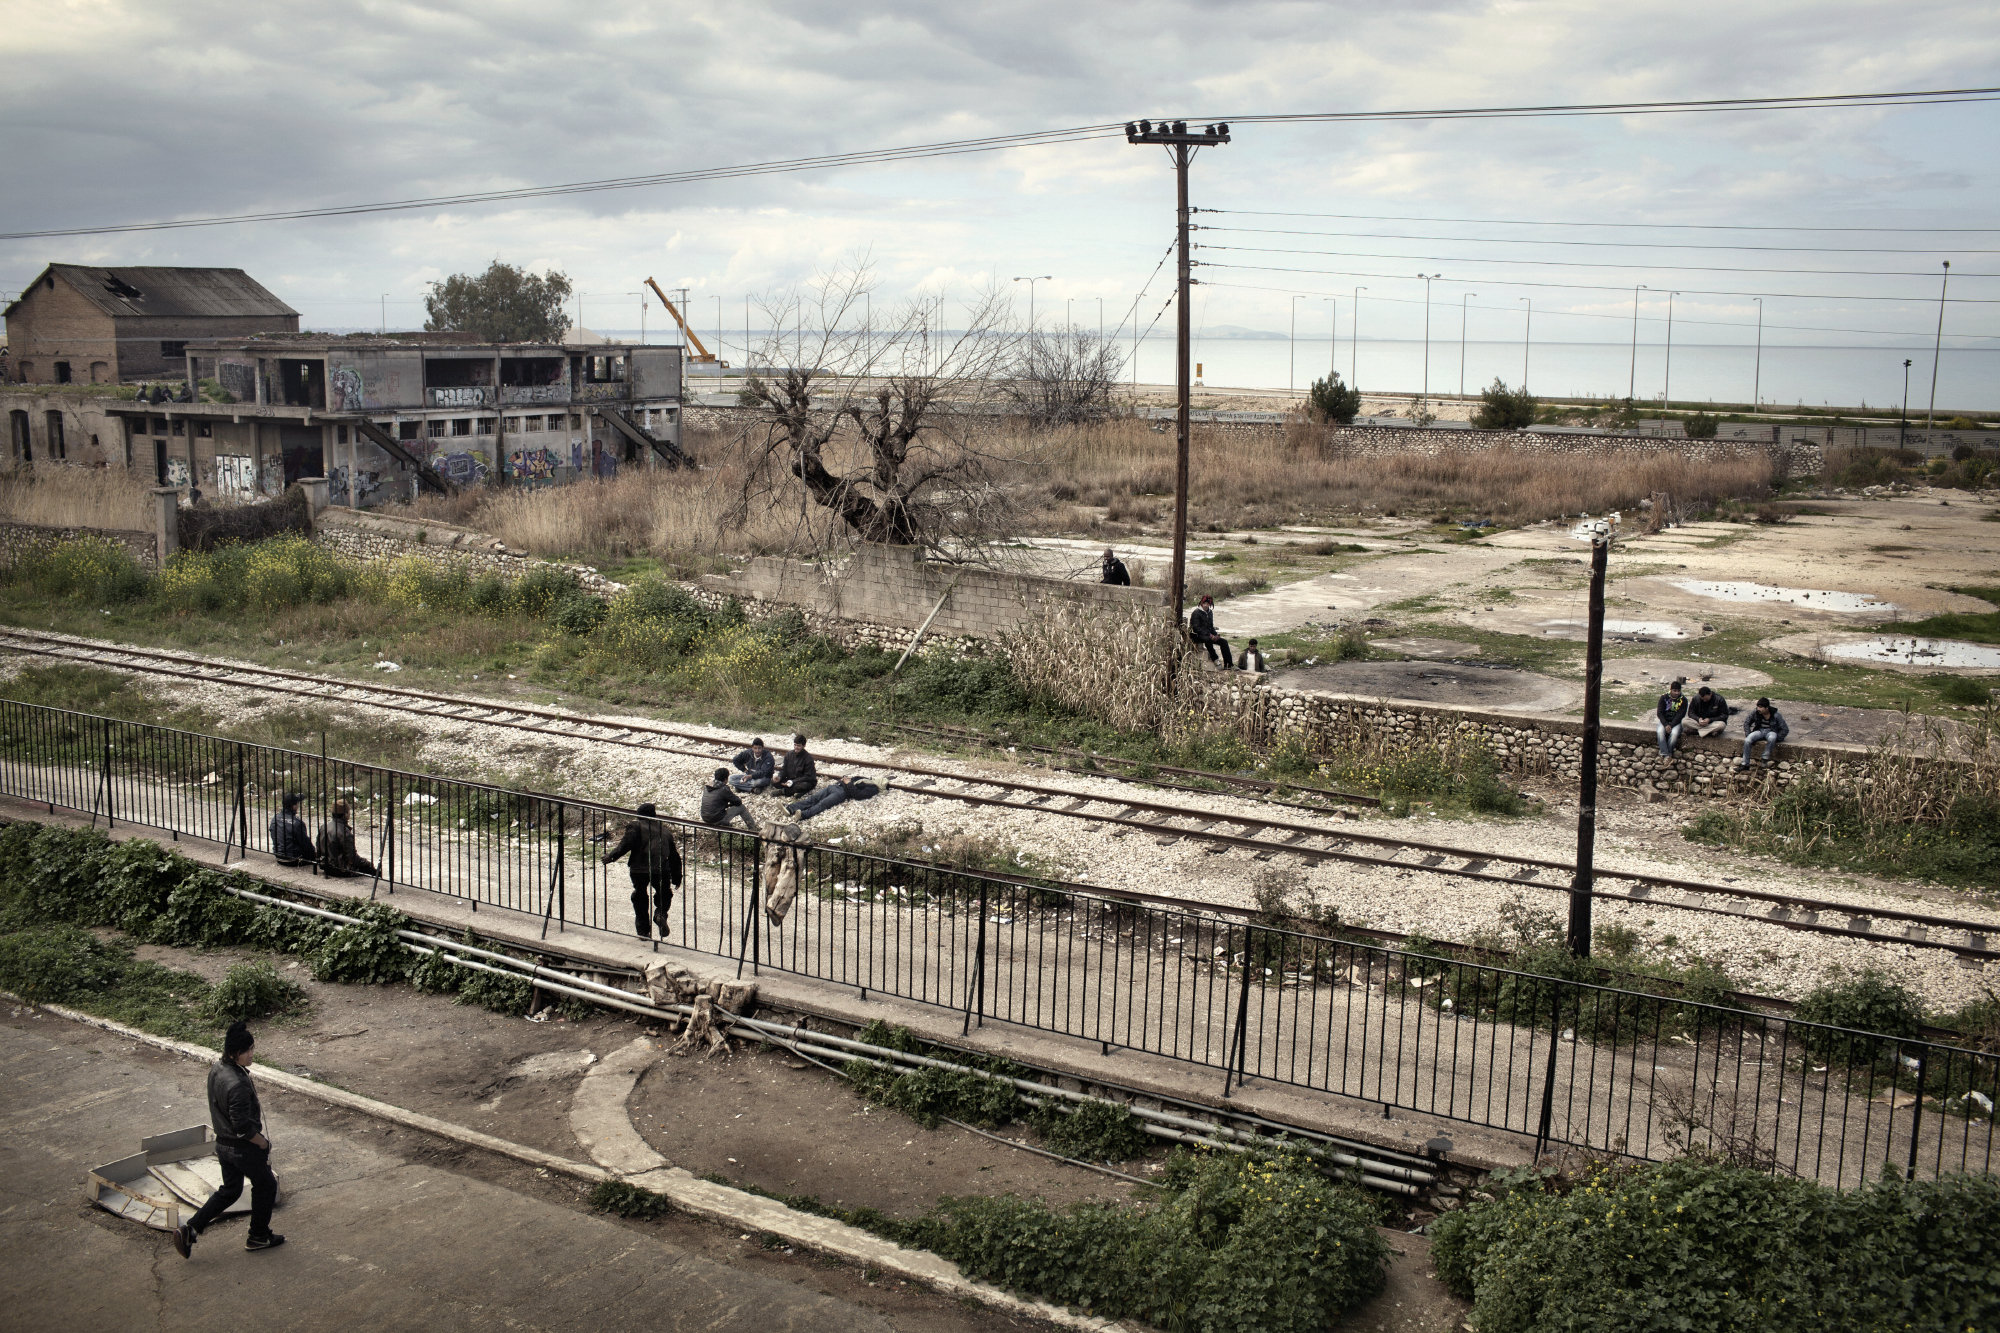 View from the factory where illegal immigrants live, near the port of Patras, Greece.